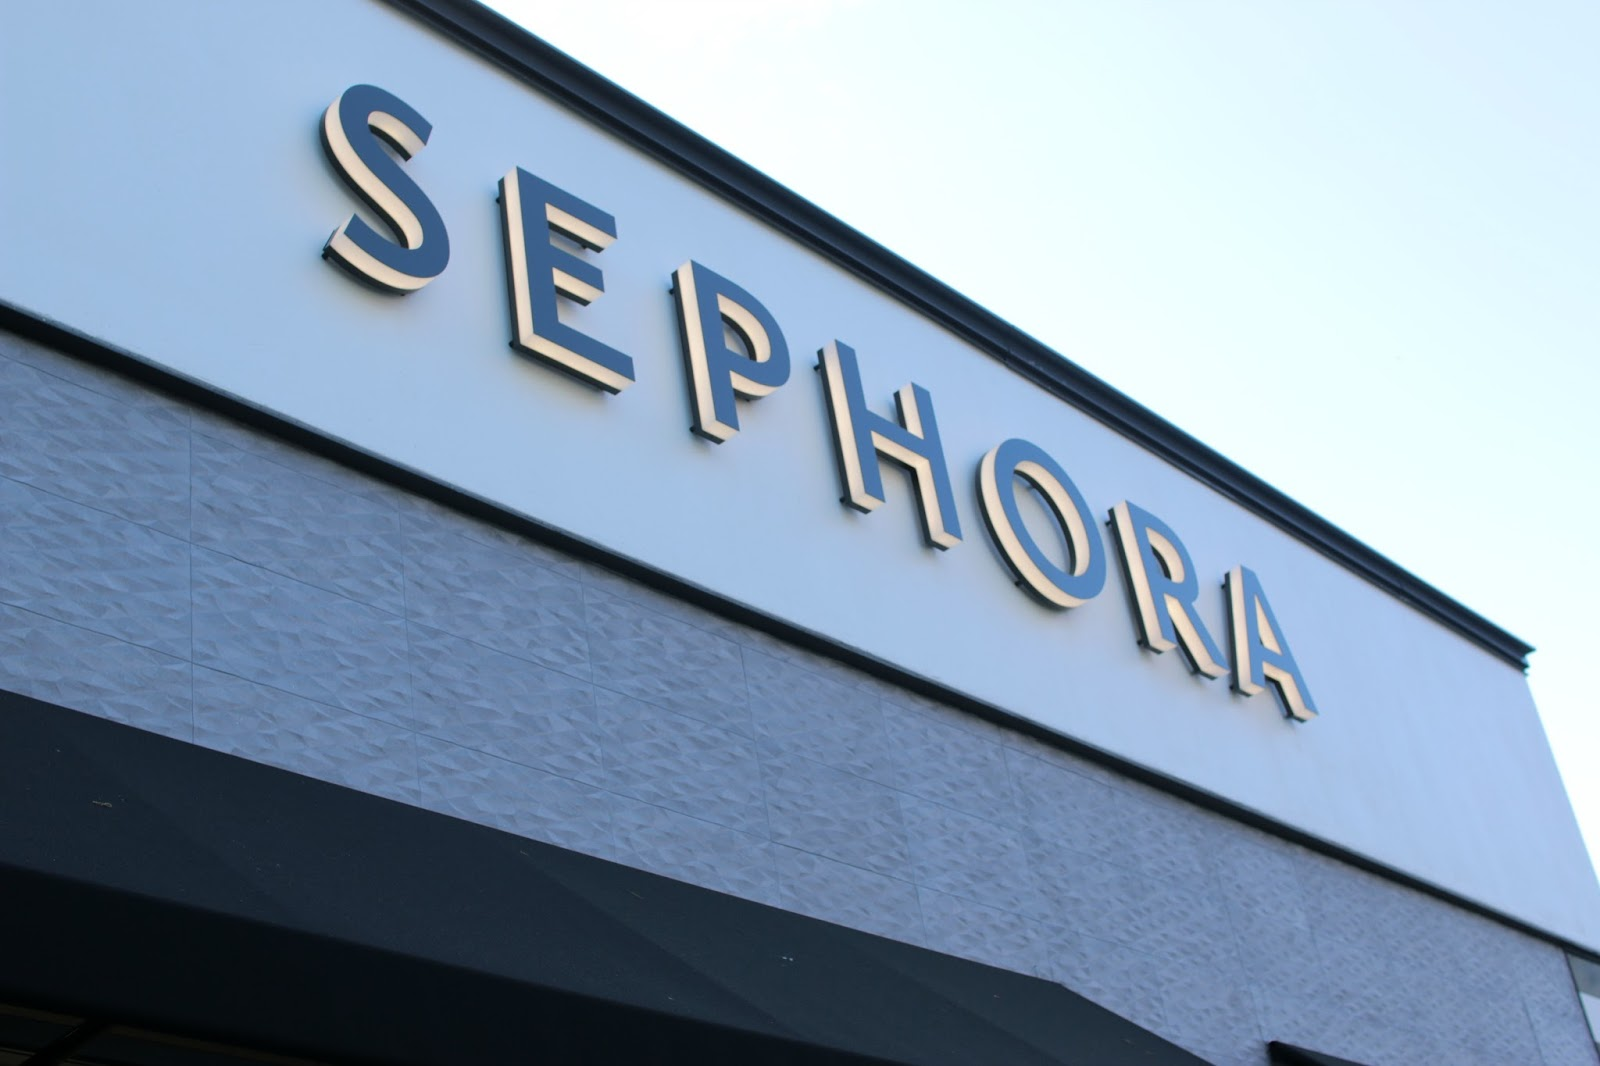 Elle sees beauty blogger in atlanta sephora buckhead exchange hey yall how was your weekend mine was great on friday i got to attend the grand opening of a new sephora here in atlanta malvernweather Choice Image